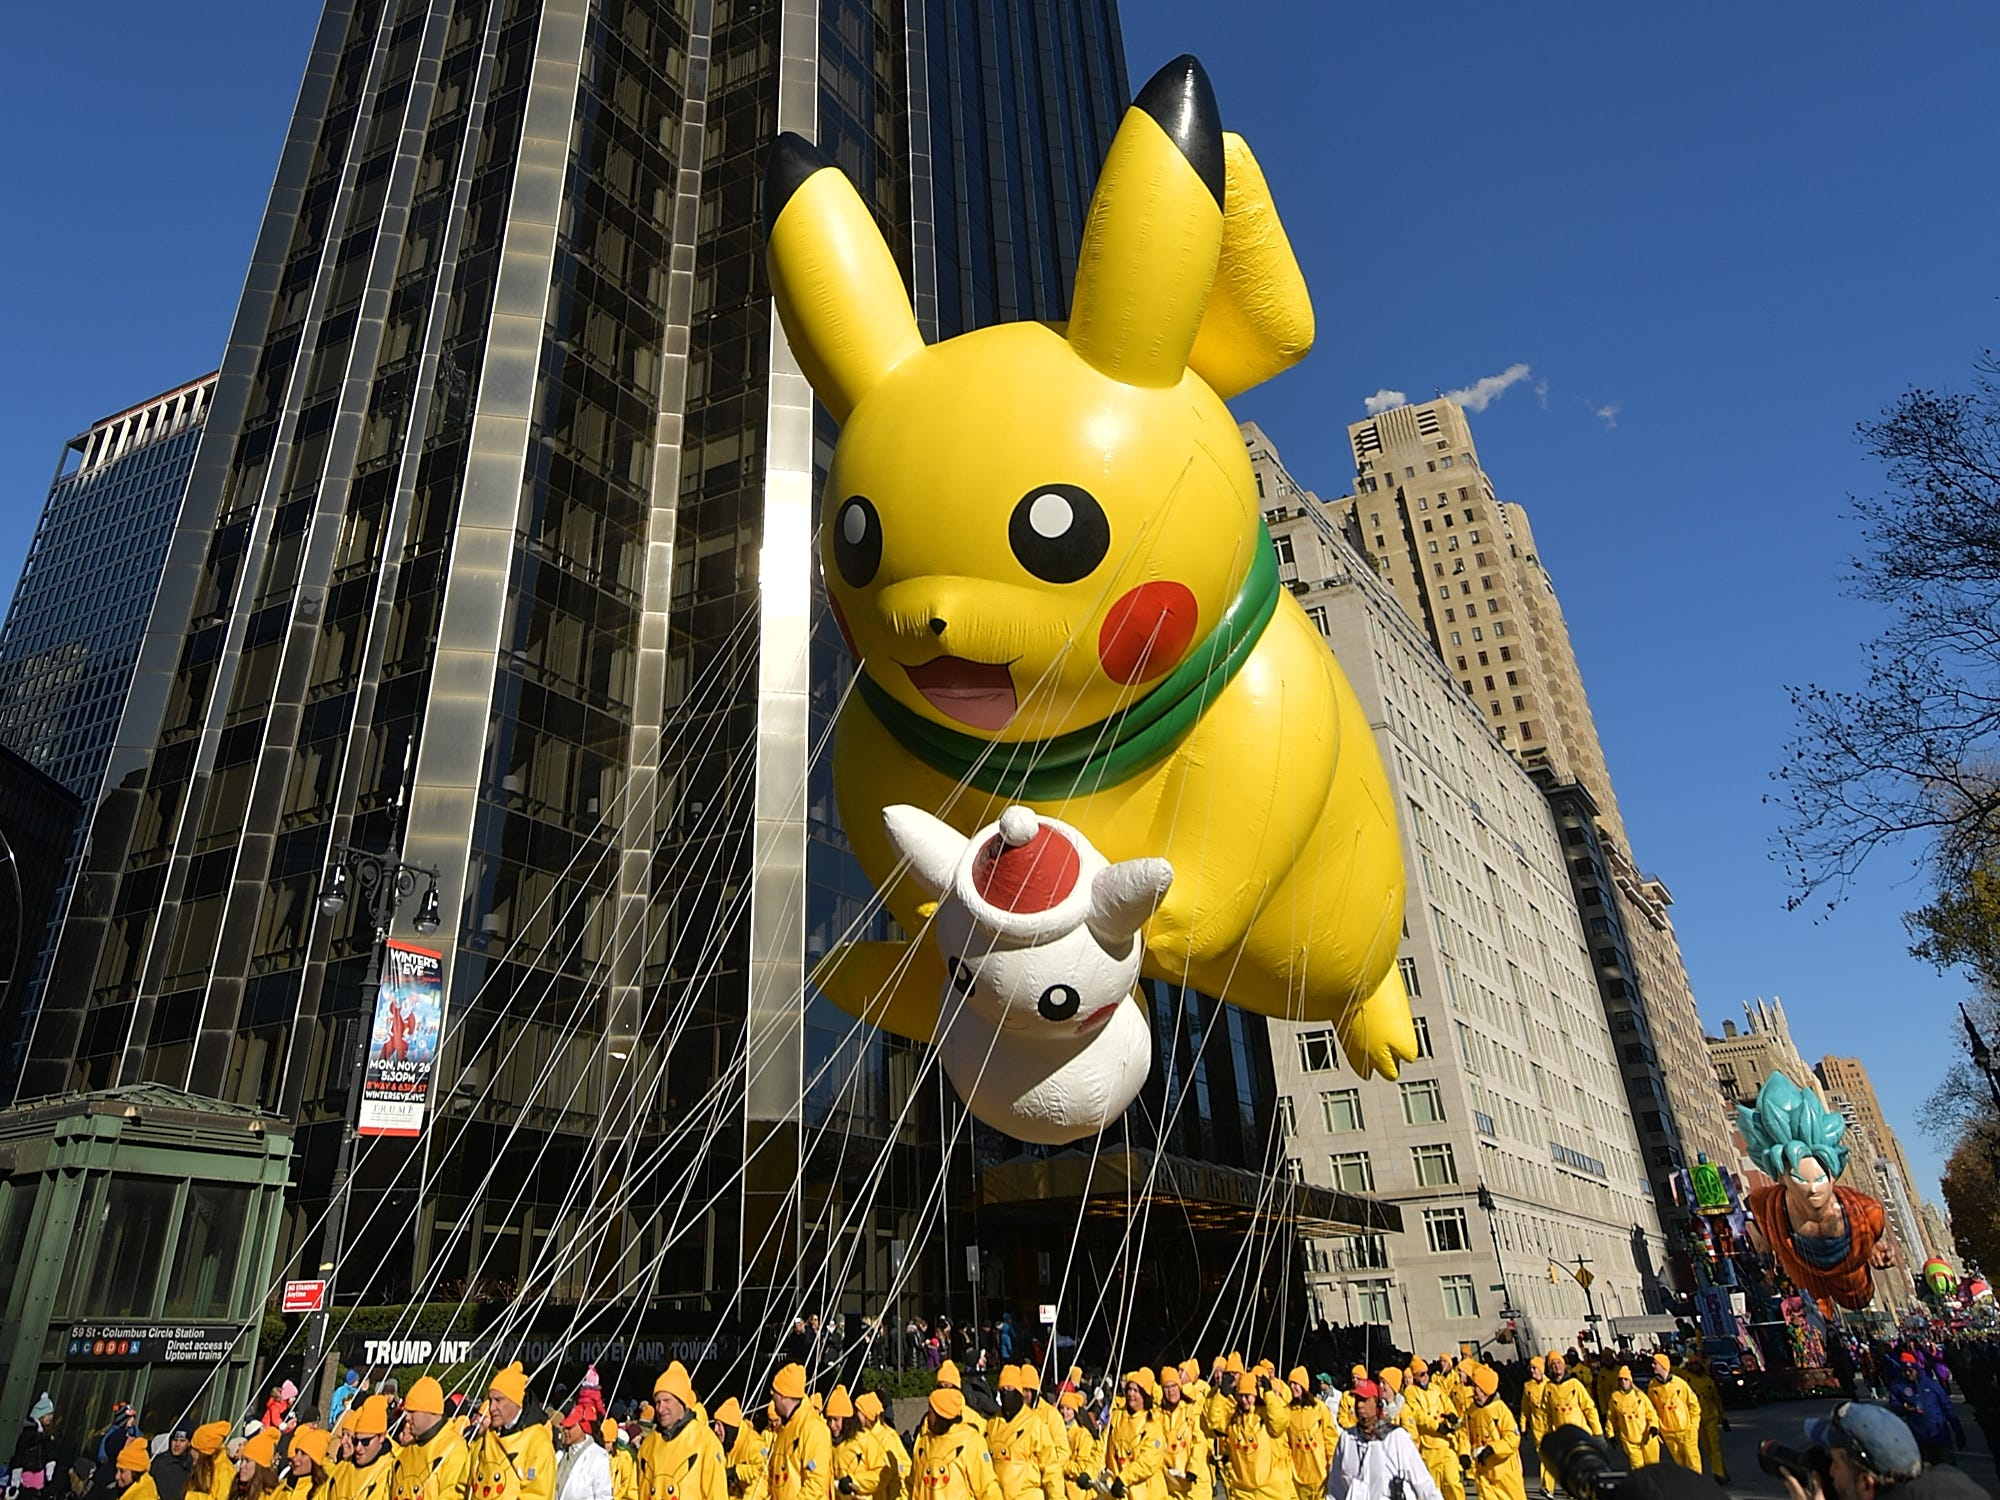 The Pikachu and Snowman Pikachu balloons float along the parade route during the 2018 Macy's Thanksgiving Day Parade, Nov. 22, 2018, in New York.